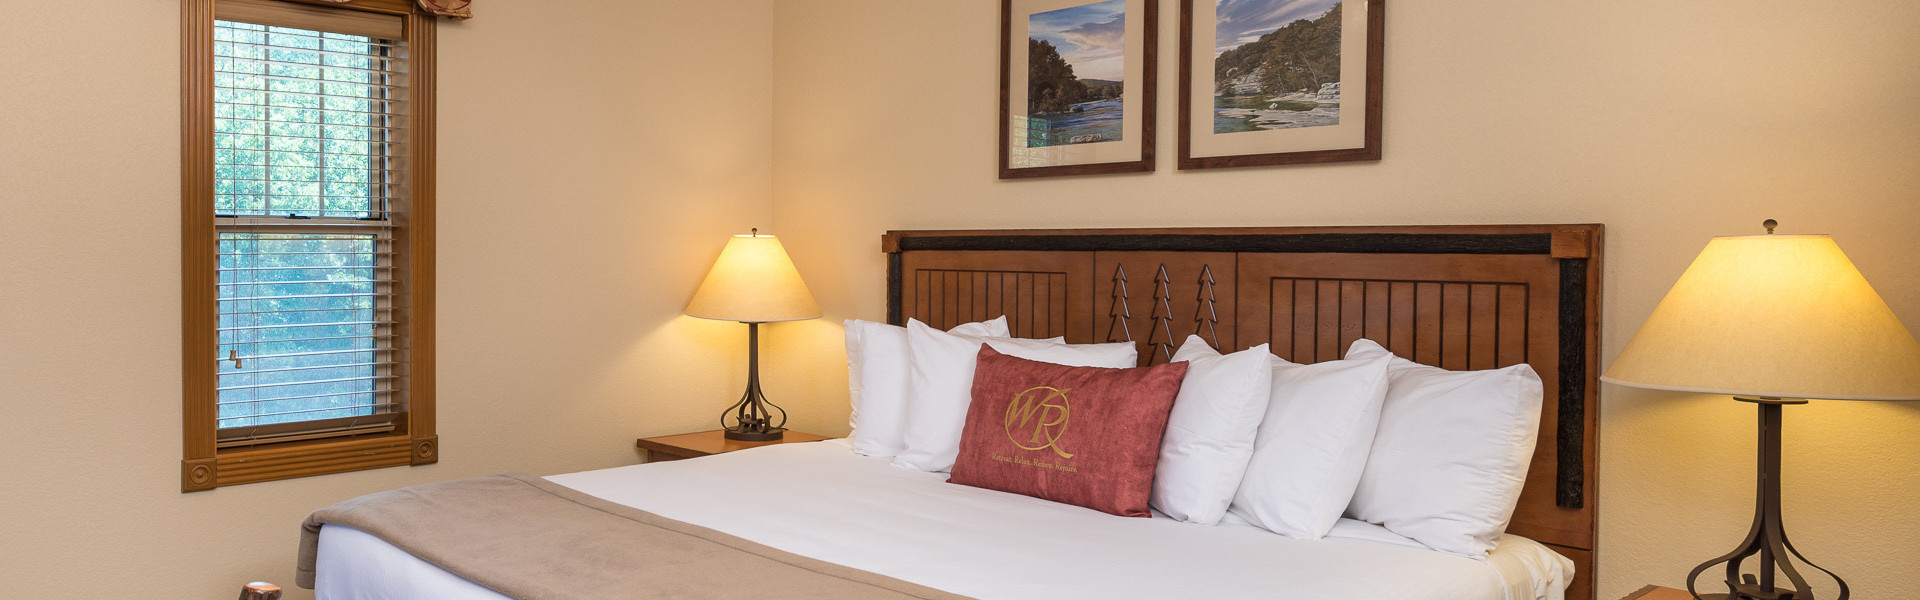 Rooms and Cabins at our Branson Hotel near Roark Valley Road | King Bed Room